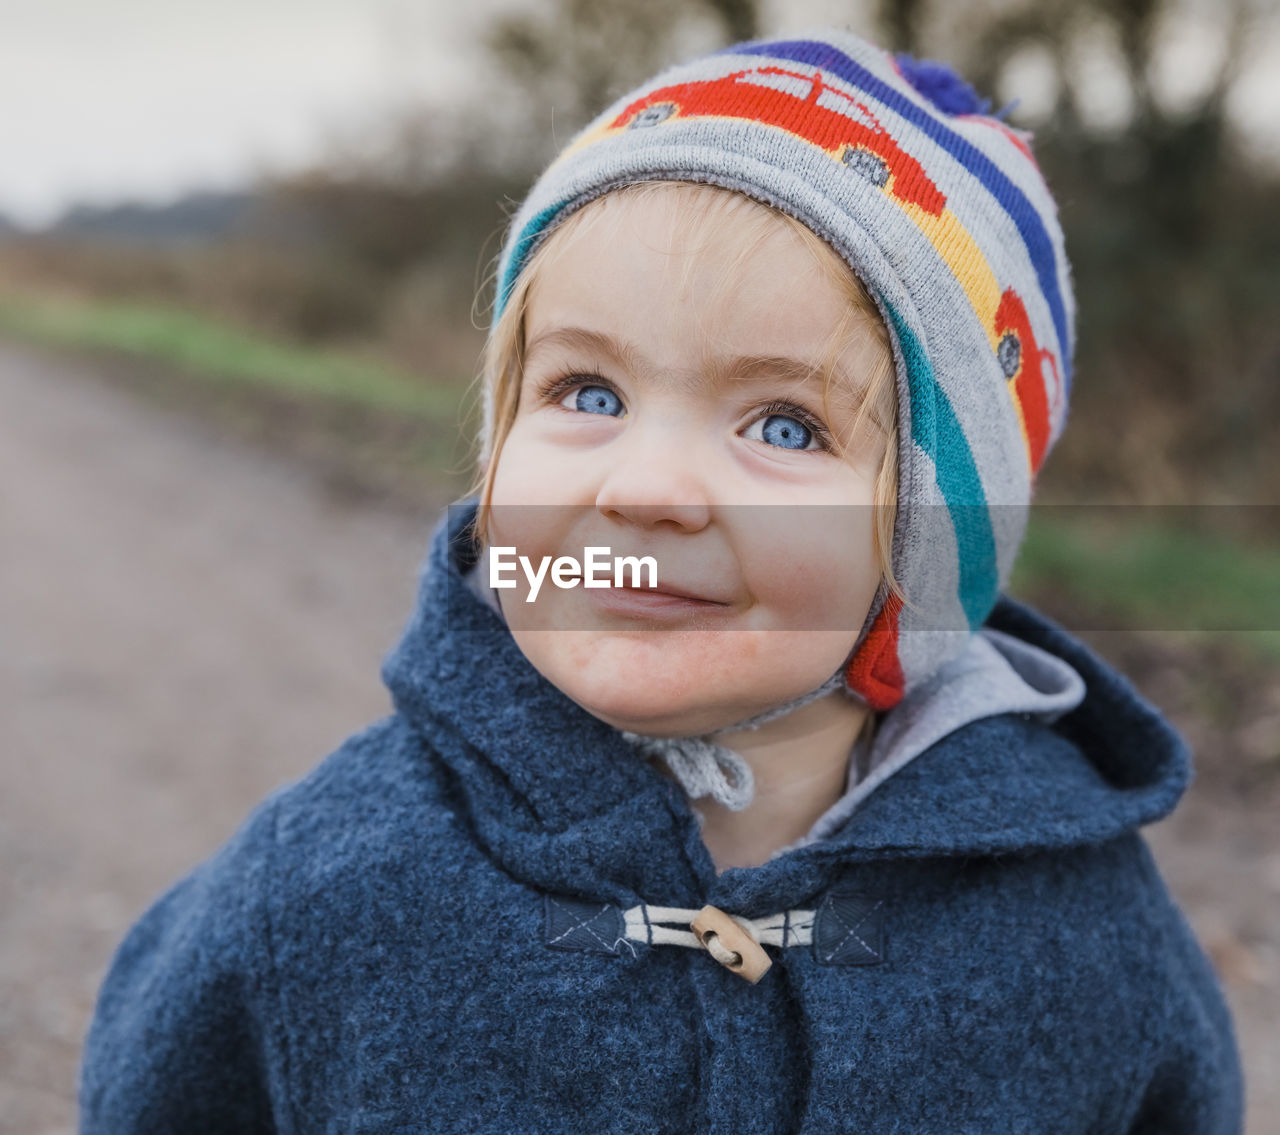 portrait, headshot, clothing, child, one person, focus on foreground, childhood, real people, front view, looking at camera, innocence, day, winter, warm clothing, close-up, boys, men, cute, outdoors, hood - clothing